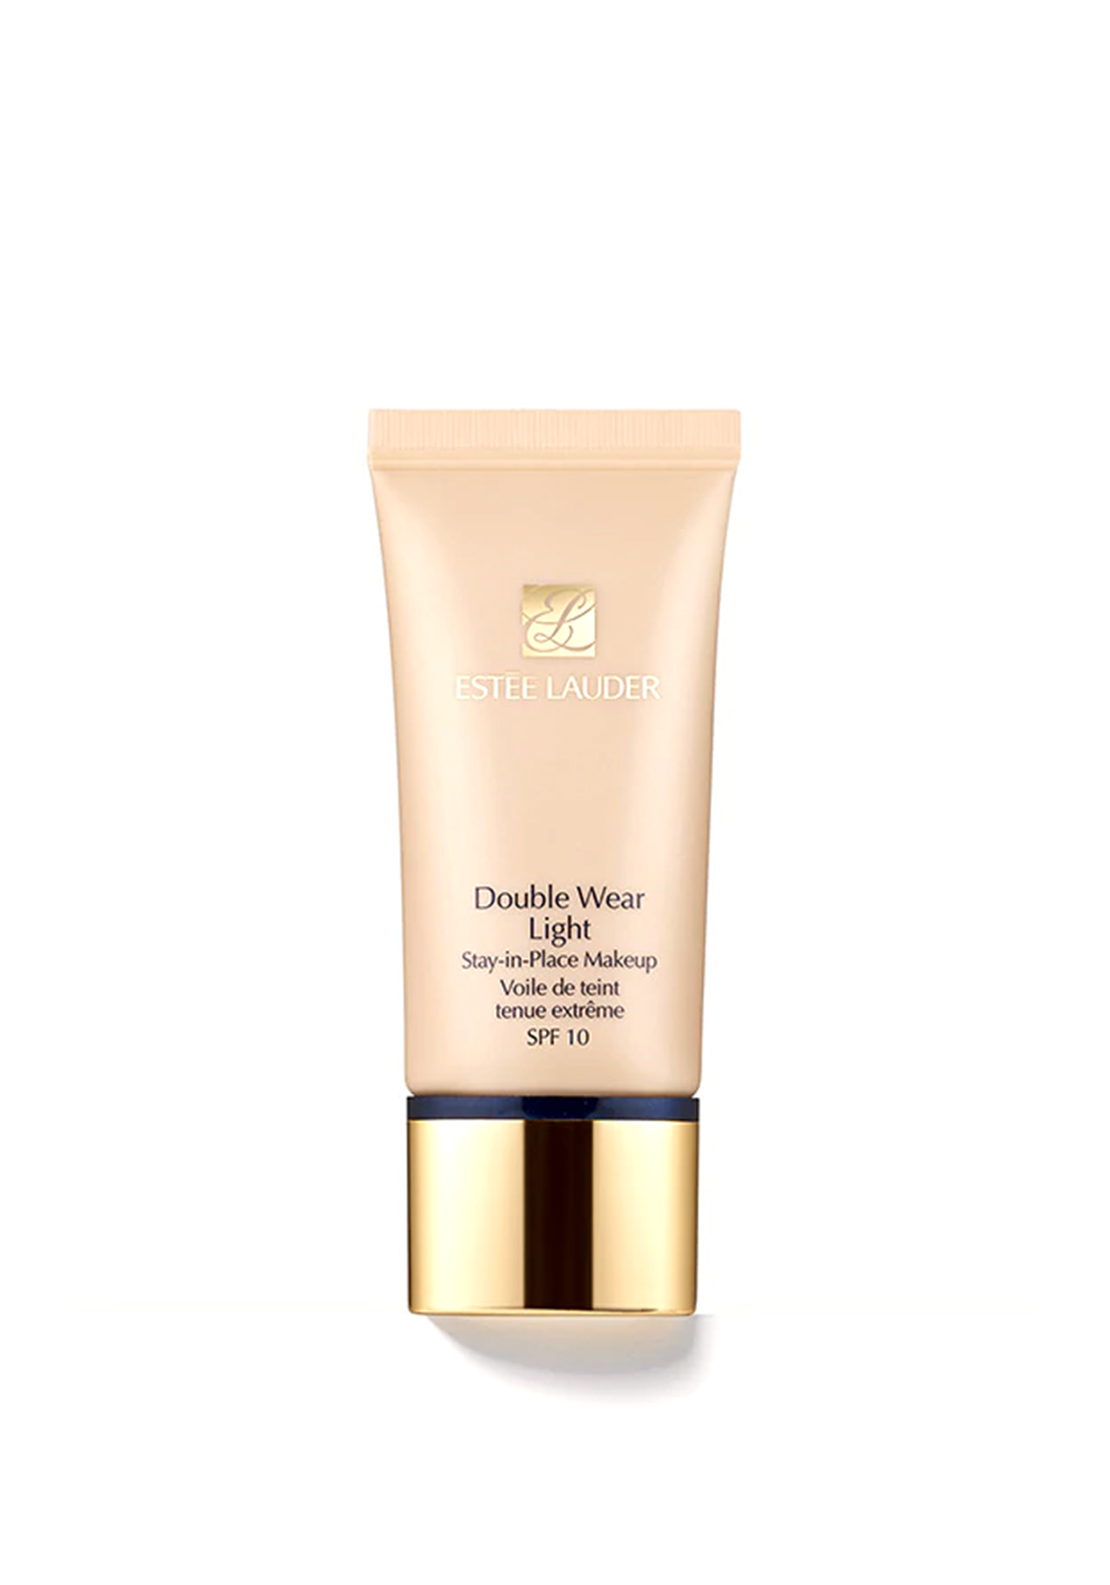 Estee Lauder Double Wear Light Stay-in-Place Make Up SPF 10, Intensity 2.0